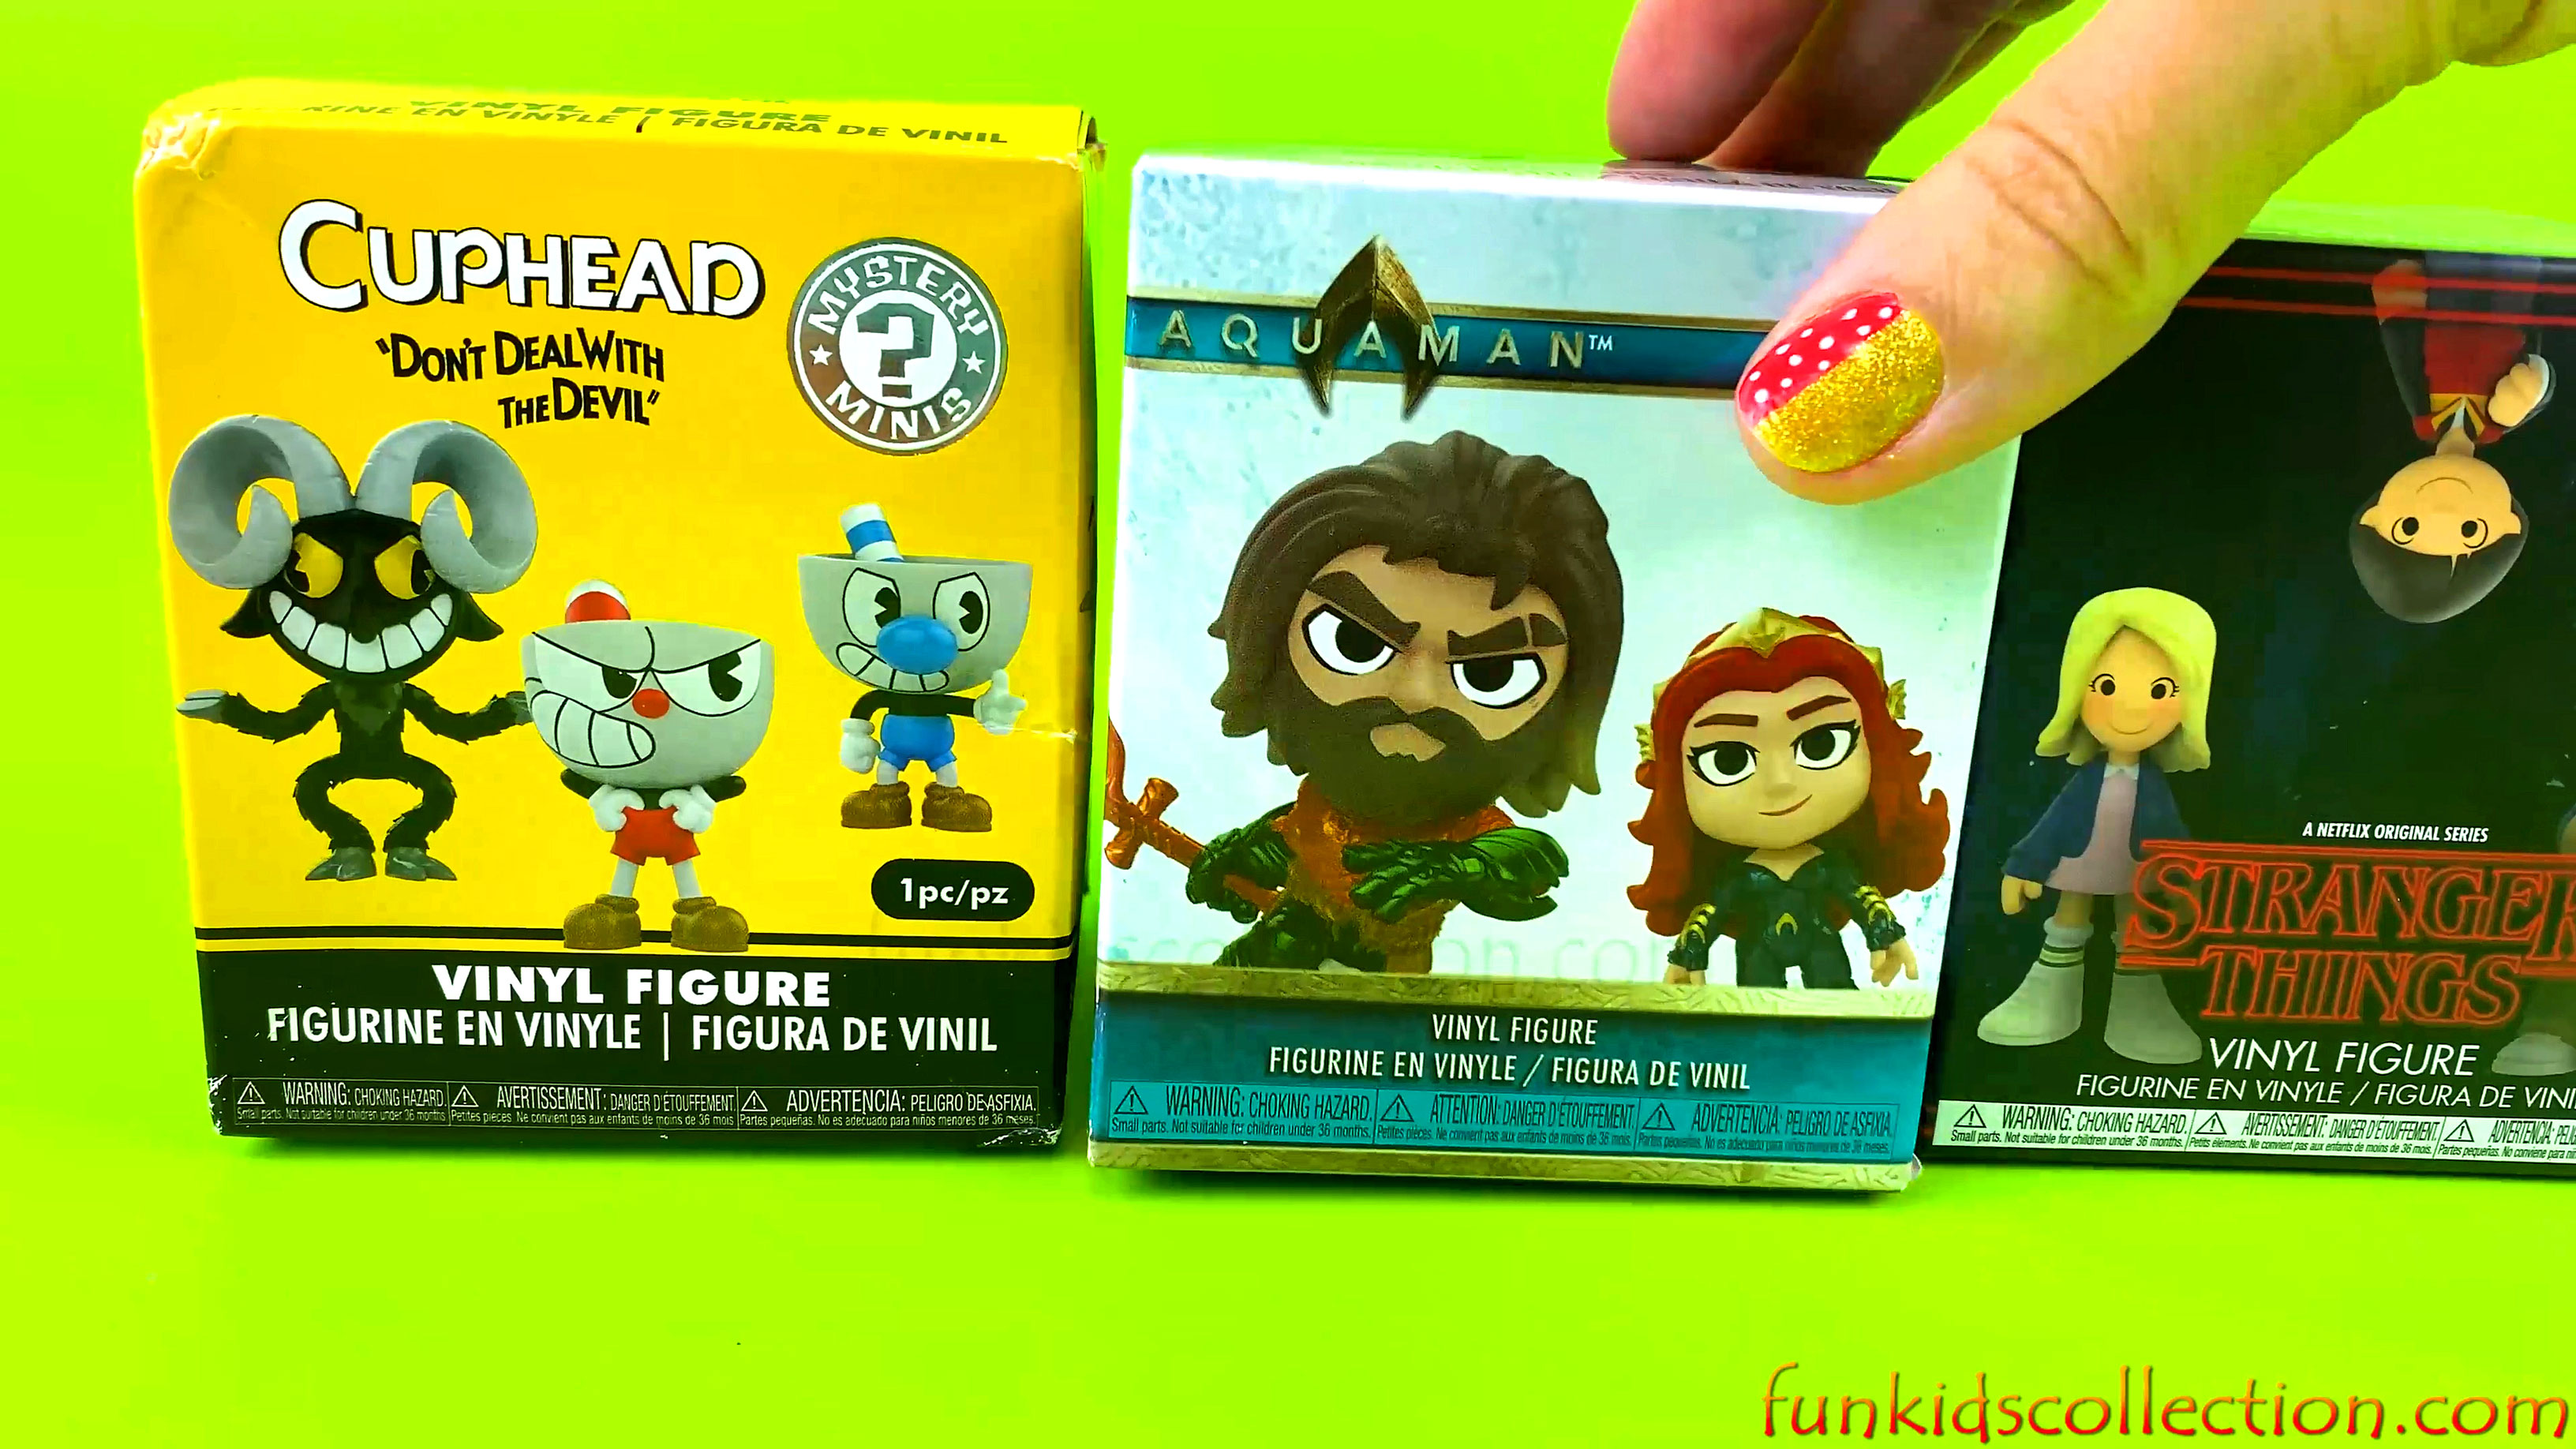 Unboxing Blind Boxes CupHead Vinyl Figure Aquaman Mystery Minis Stranger Things Vinyl Figure